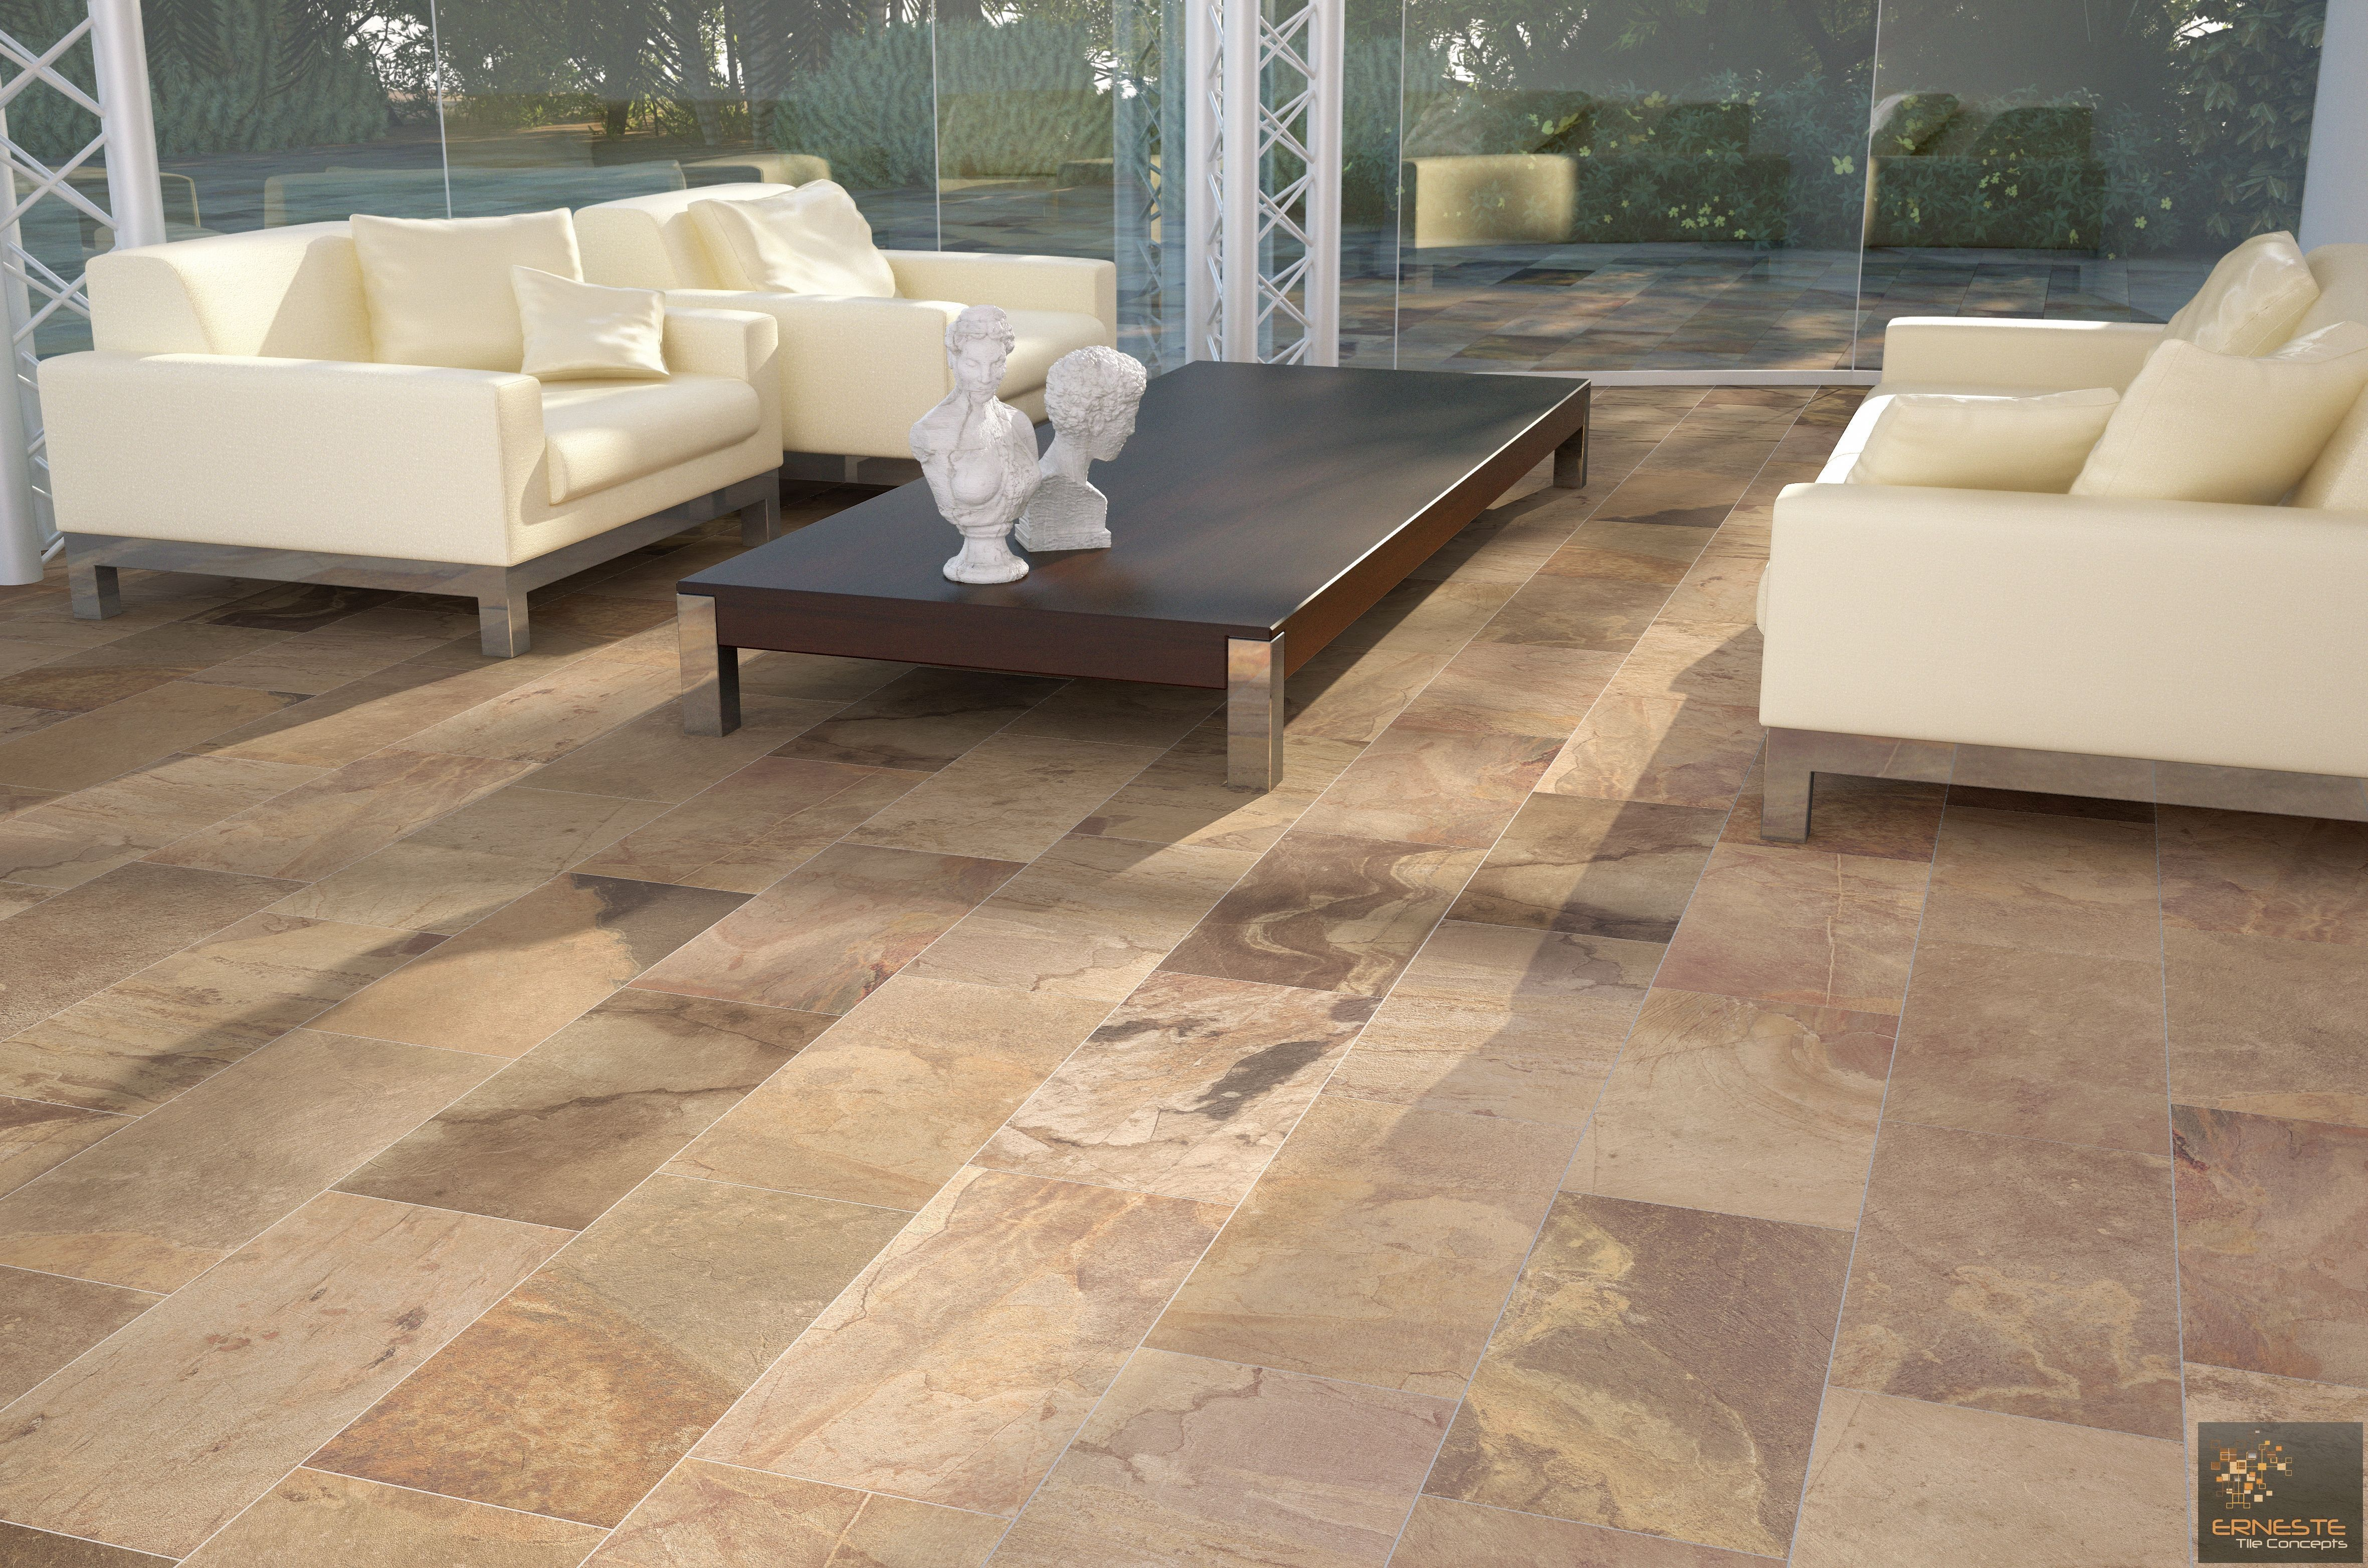 Delcona range ambiente tile outdoor tiles pool house luxury floor design delightful image of living room decoration using living room limestone porcelain tile flooring including white leather living room sofa and dailygadgetfo Gallery